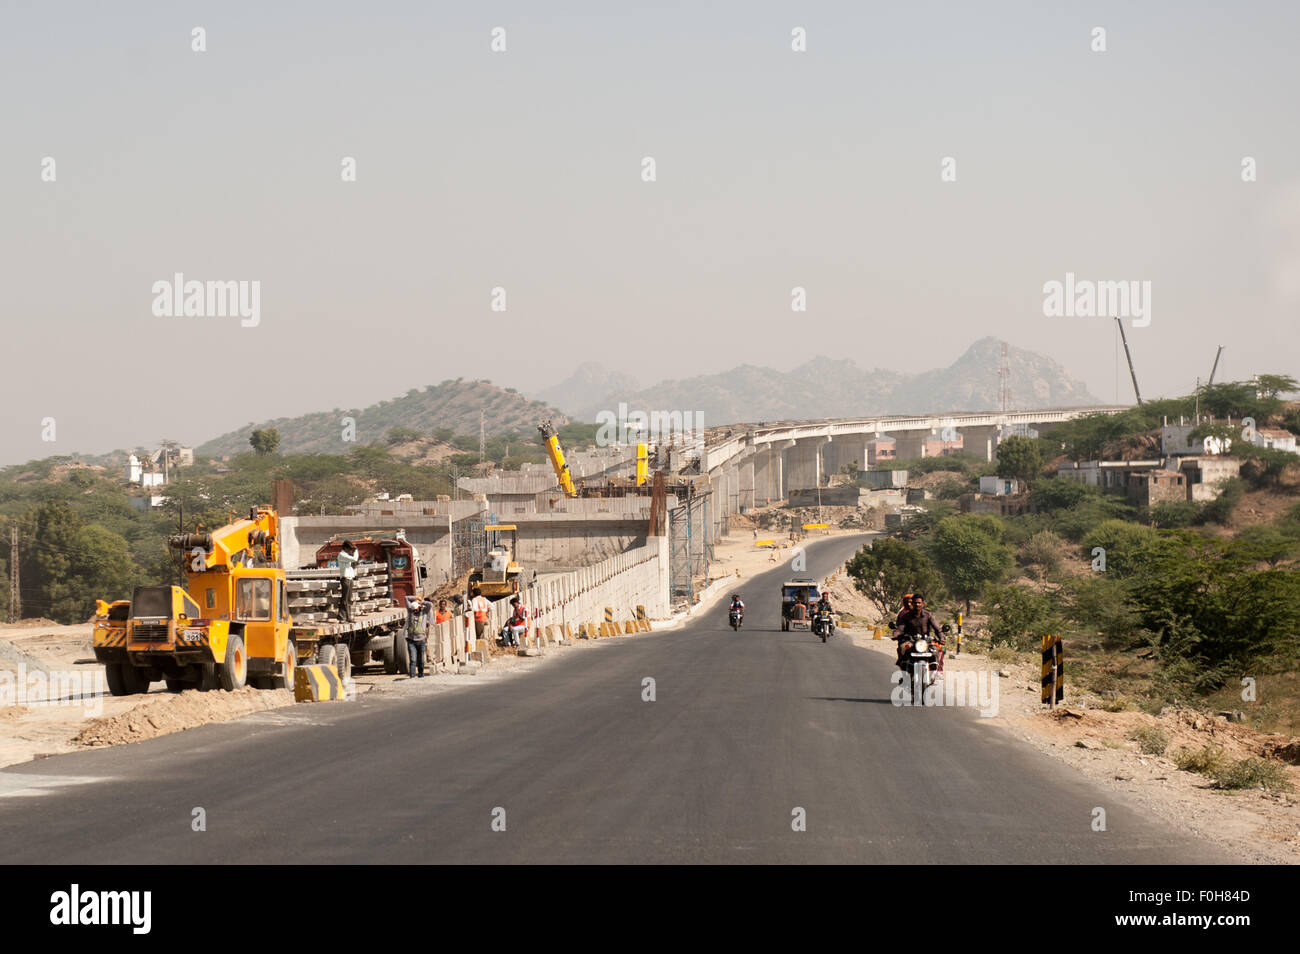 Rajasthan, India. Road from Jodhpur to Jaipur. A large concrete motorway flyover under construction. - Stock Image